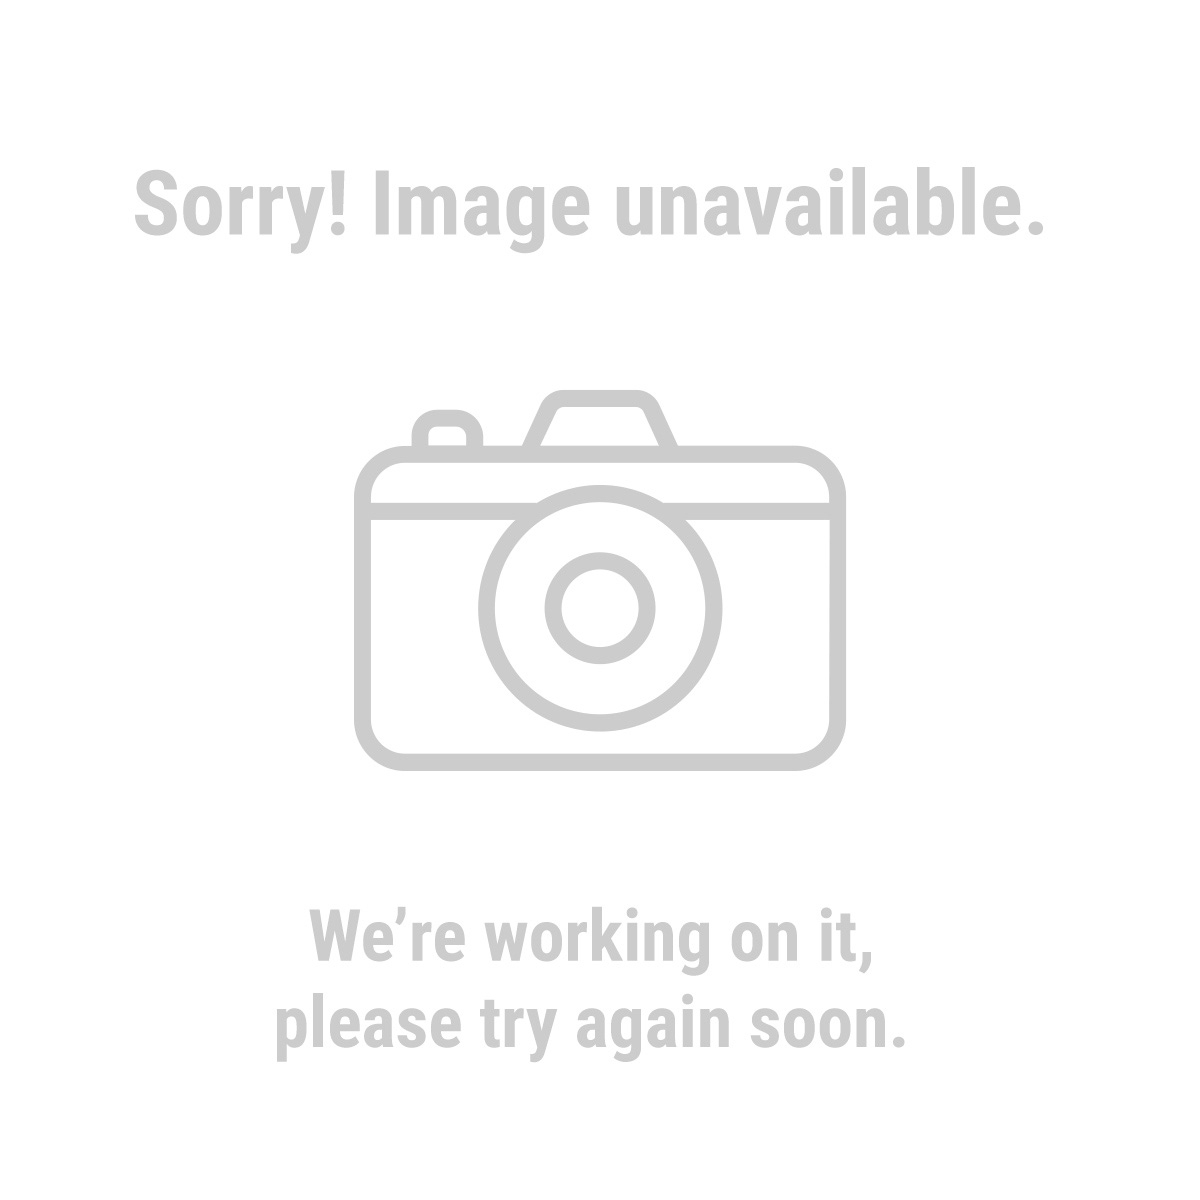 Grant's 63363 Microfiber Cleaning Cloths 4 Pk.